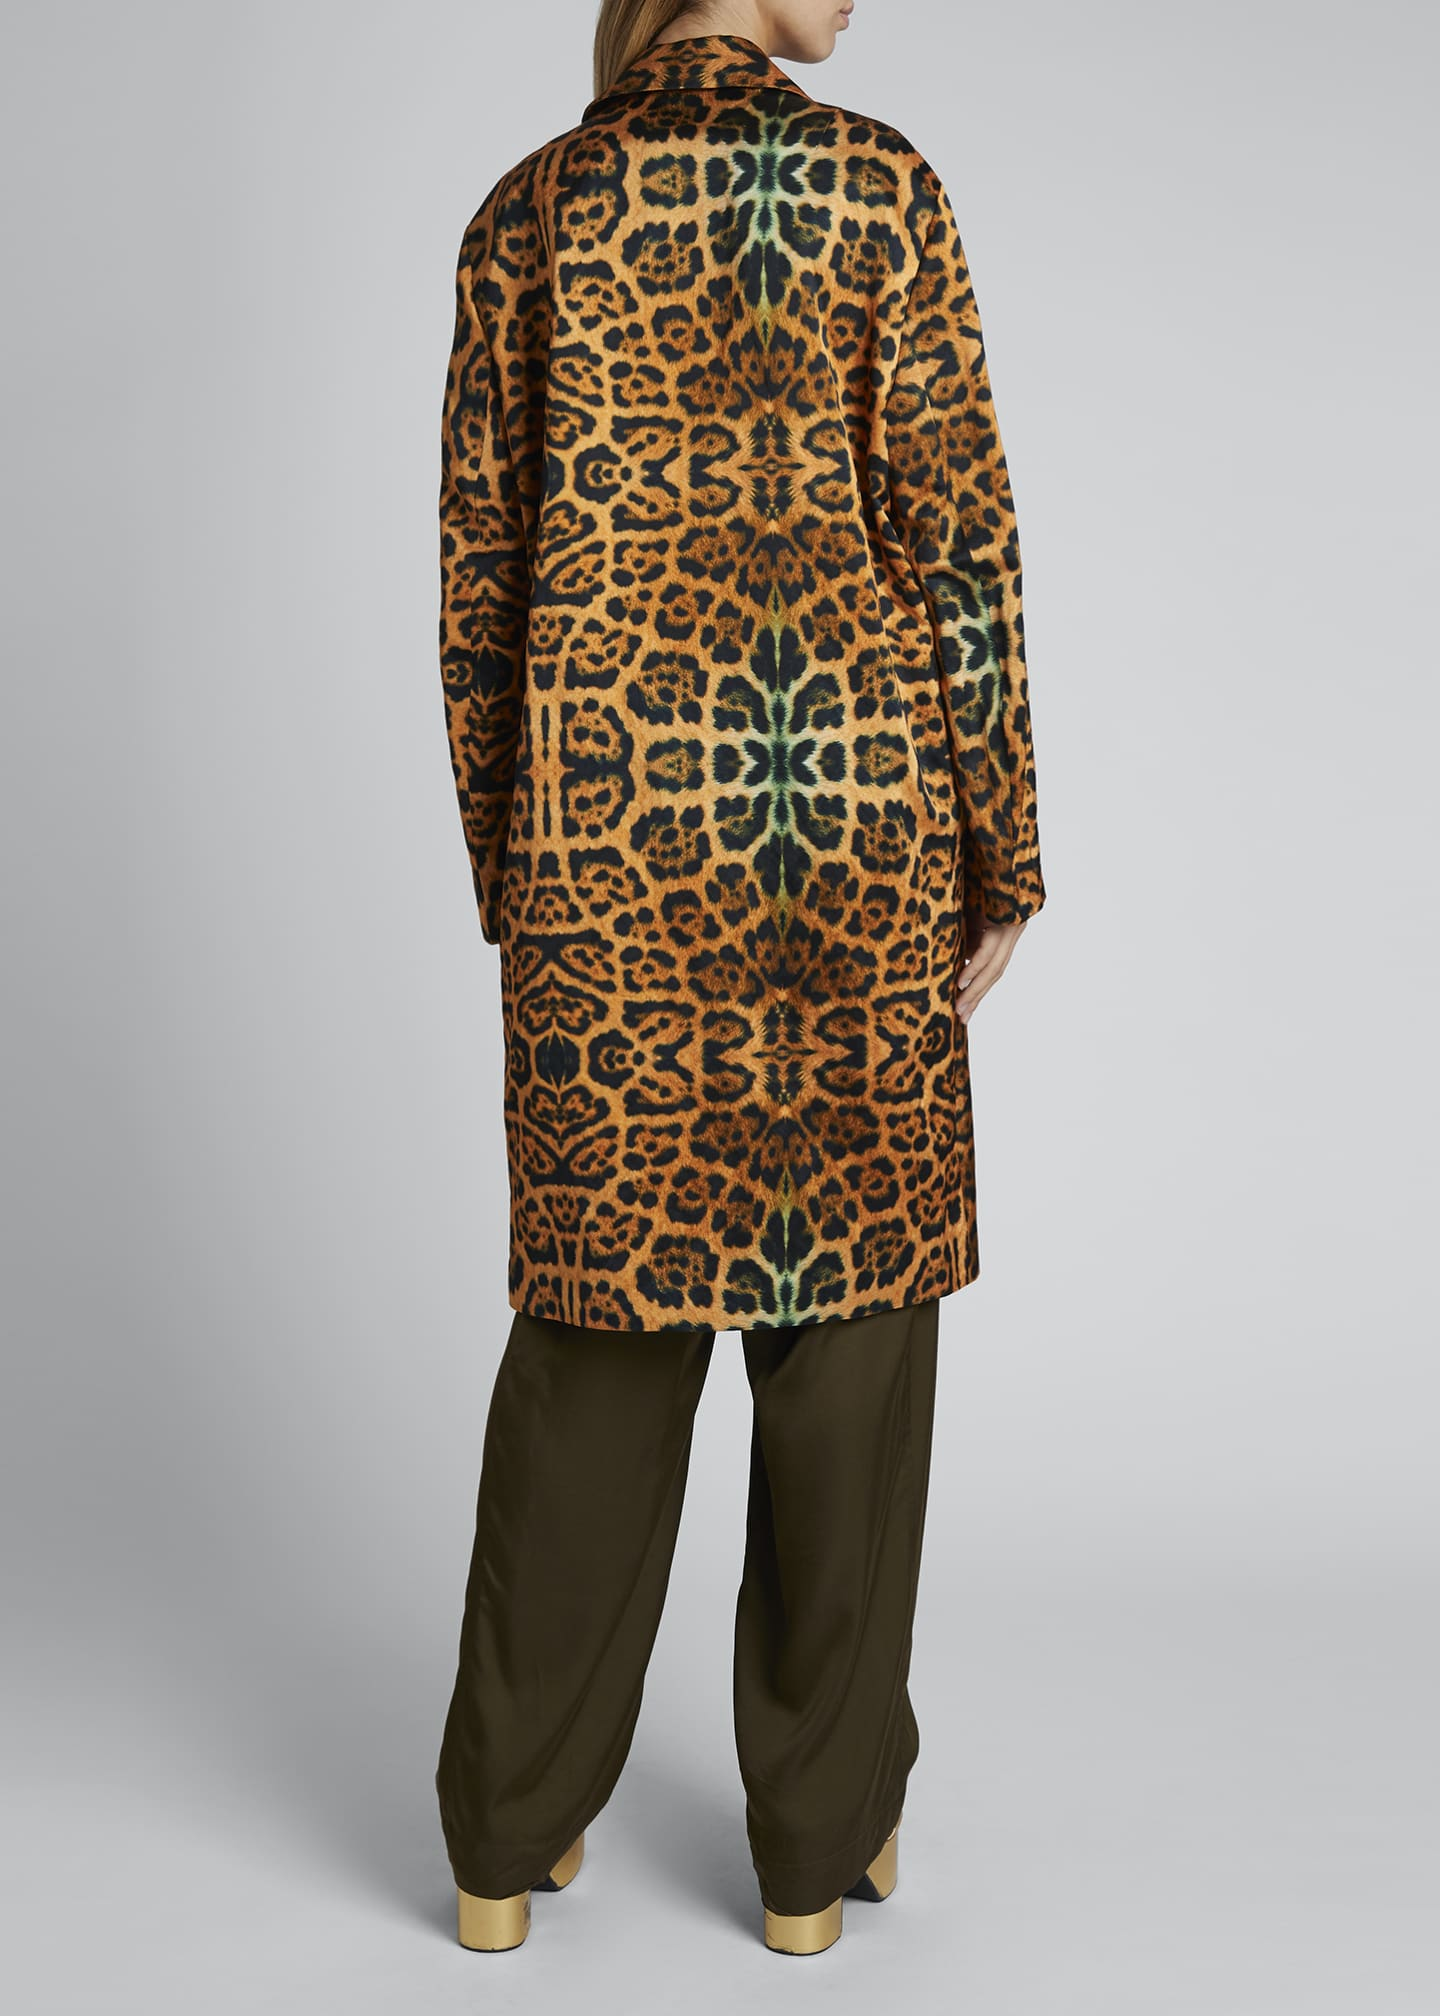 Image 2 of 3: Rolta Leopard Button Coat